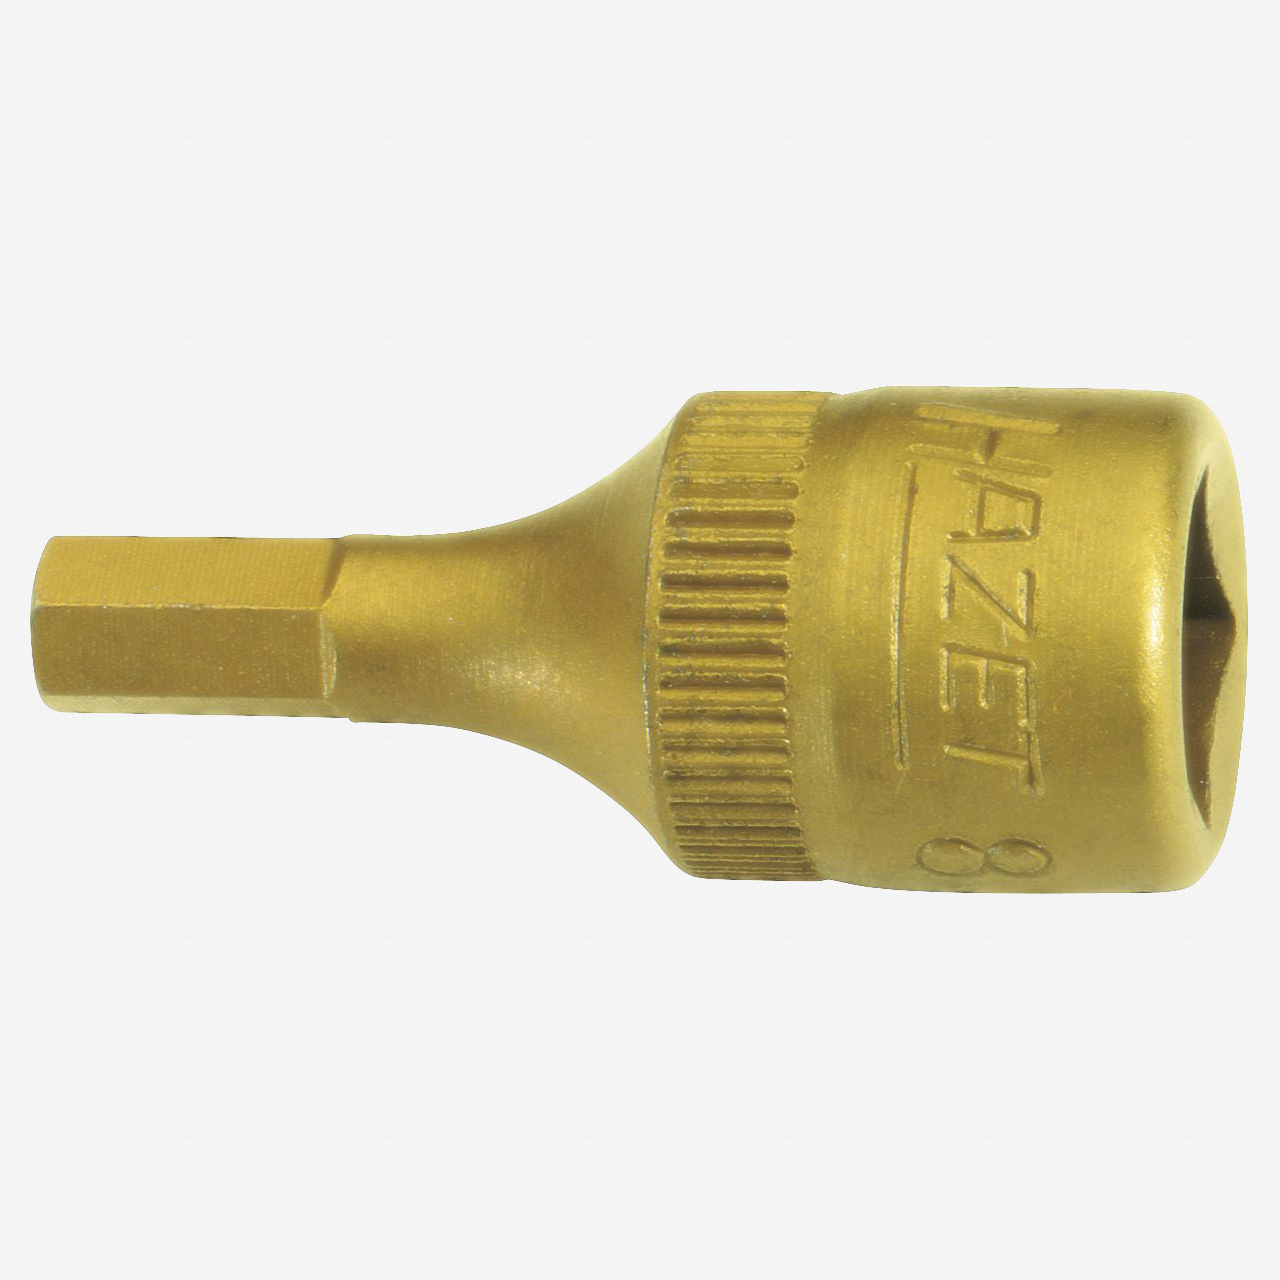 "Hazet 8501-2.5 2.5mm Hex TiN 1/4"" Socket - KC Tool"